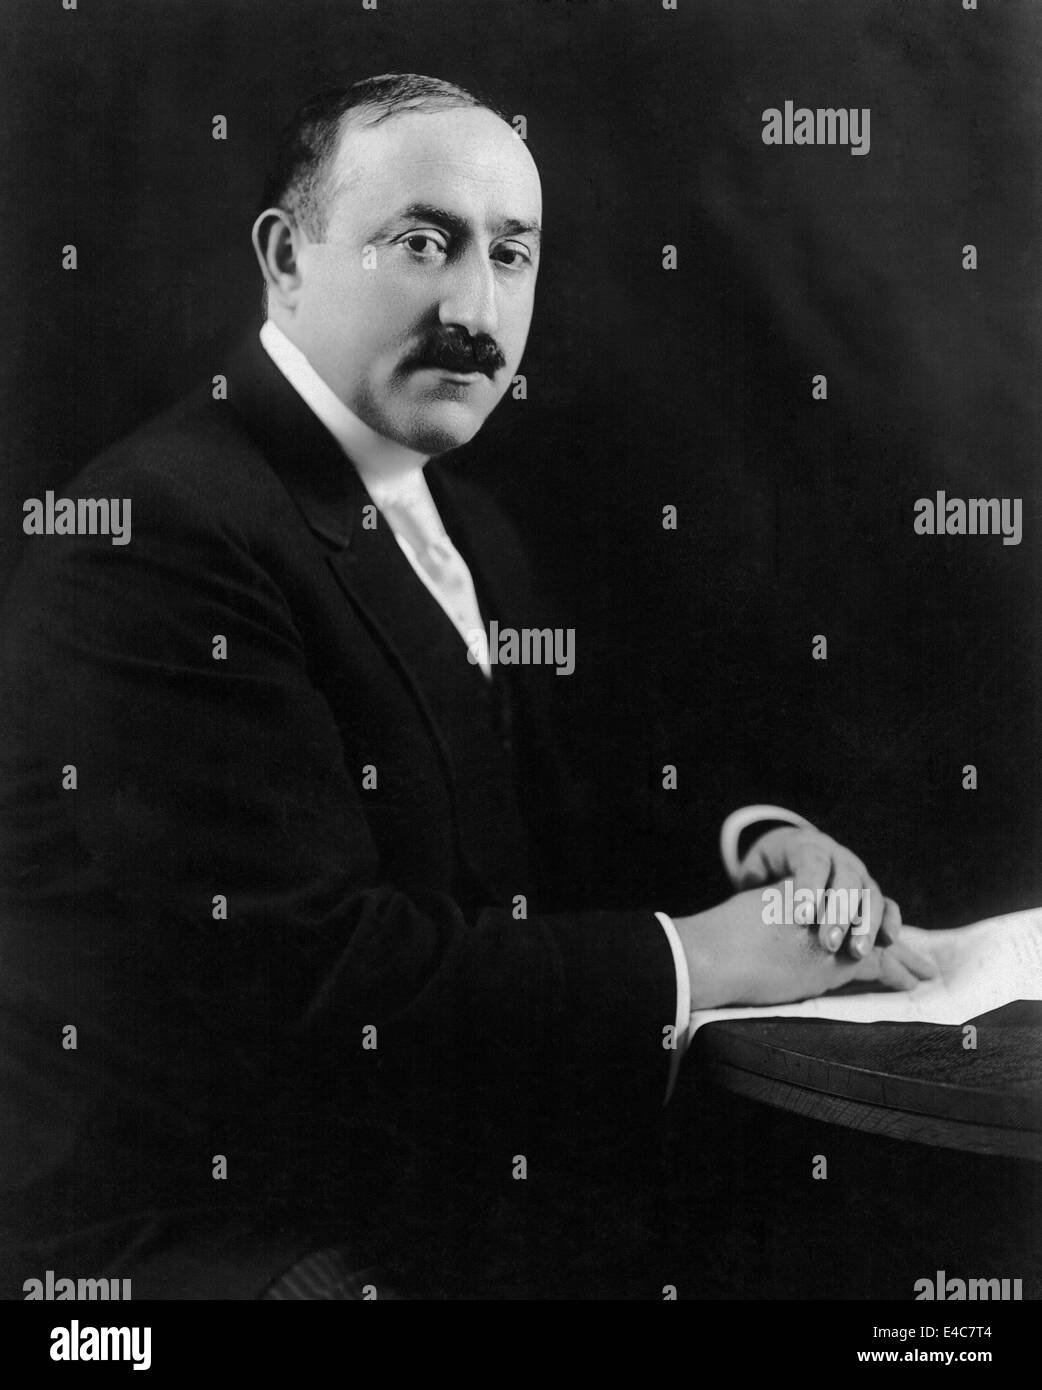 William Fox (1879-1952), American Pioneering Motion Picture Executive and Founder of Fox Film Corporation, Portrait, - Stock Image